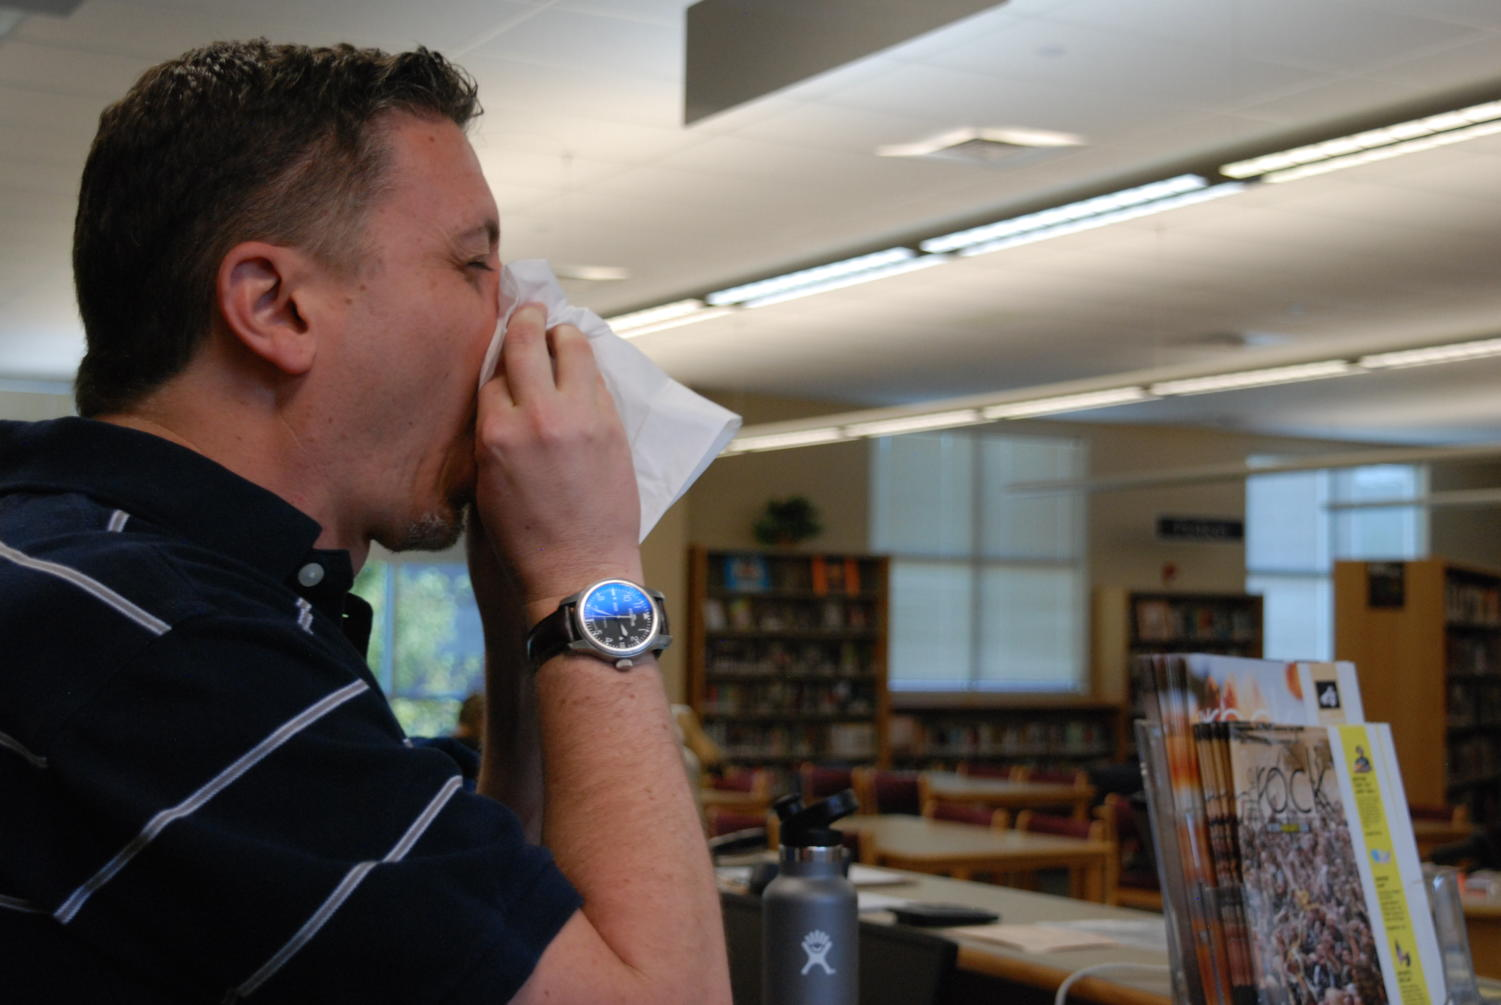 Mr. Winkleman blowing his nose during seventh period in the library.